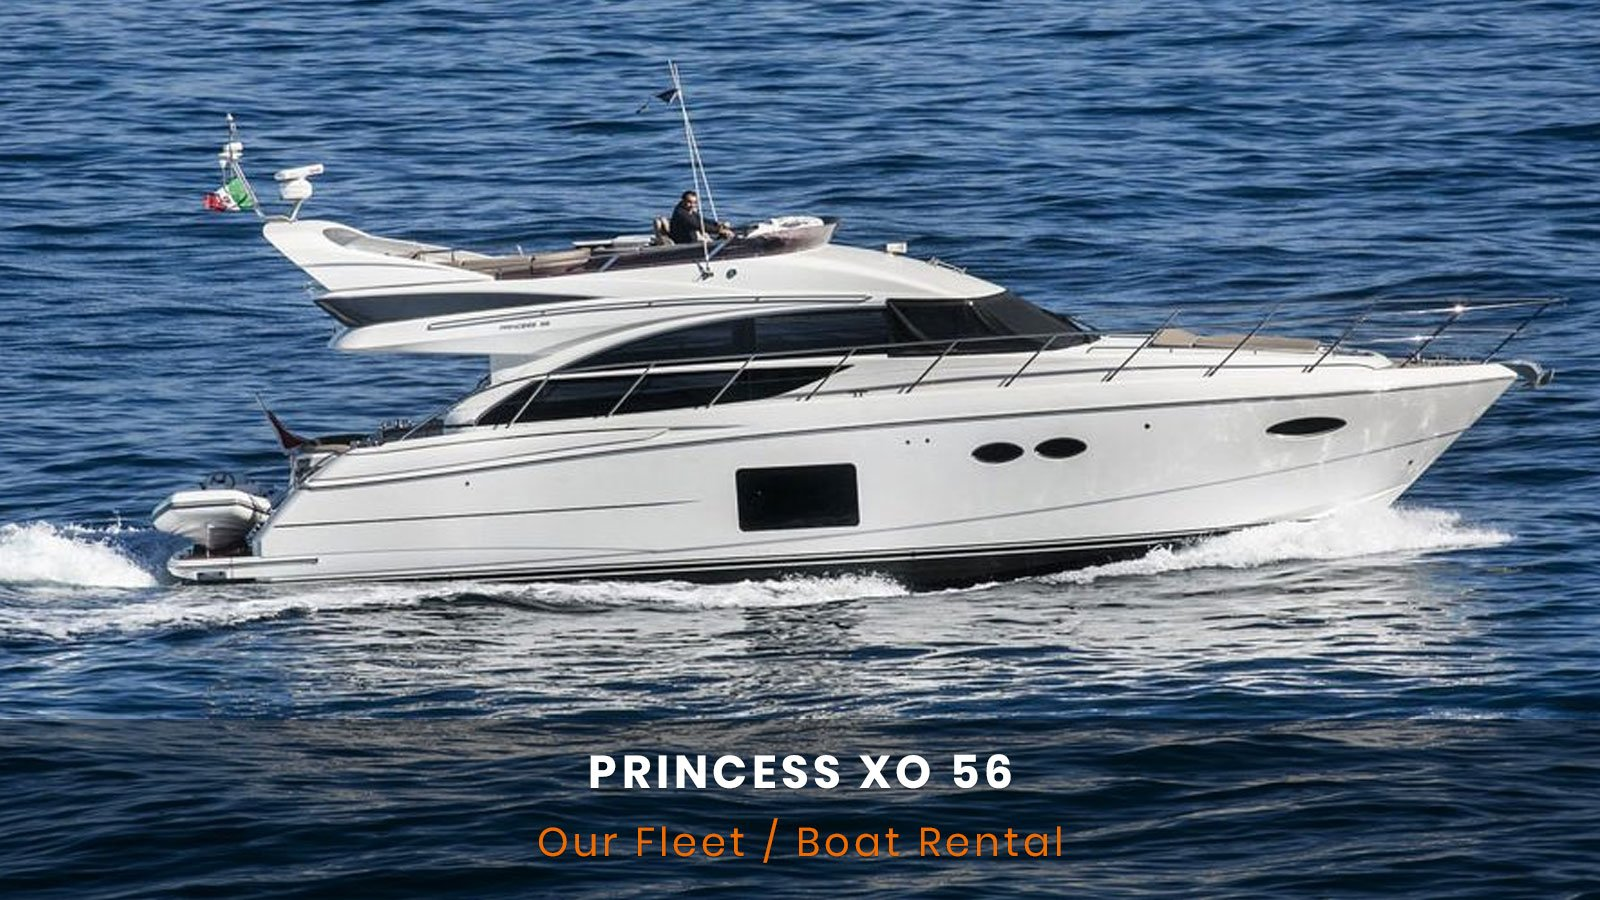 Princess 56 XO Rent Boat